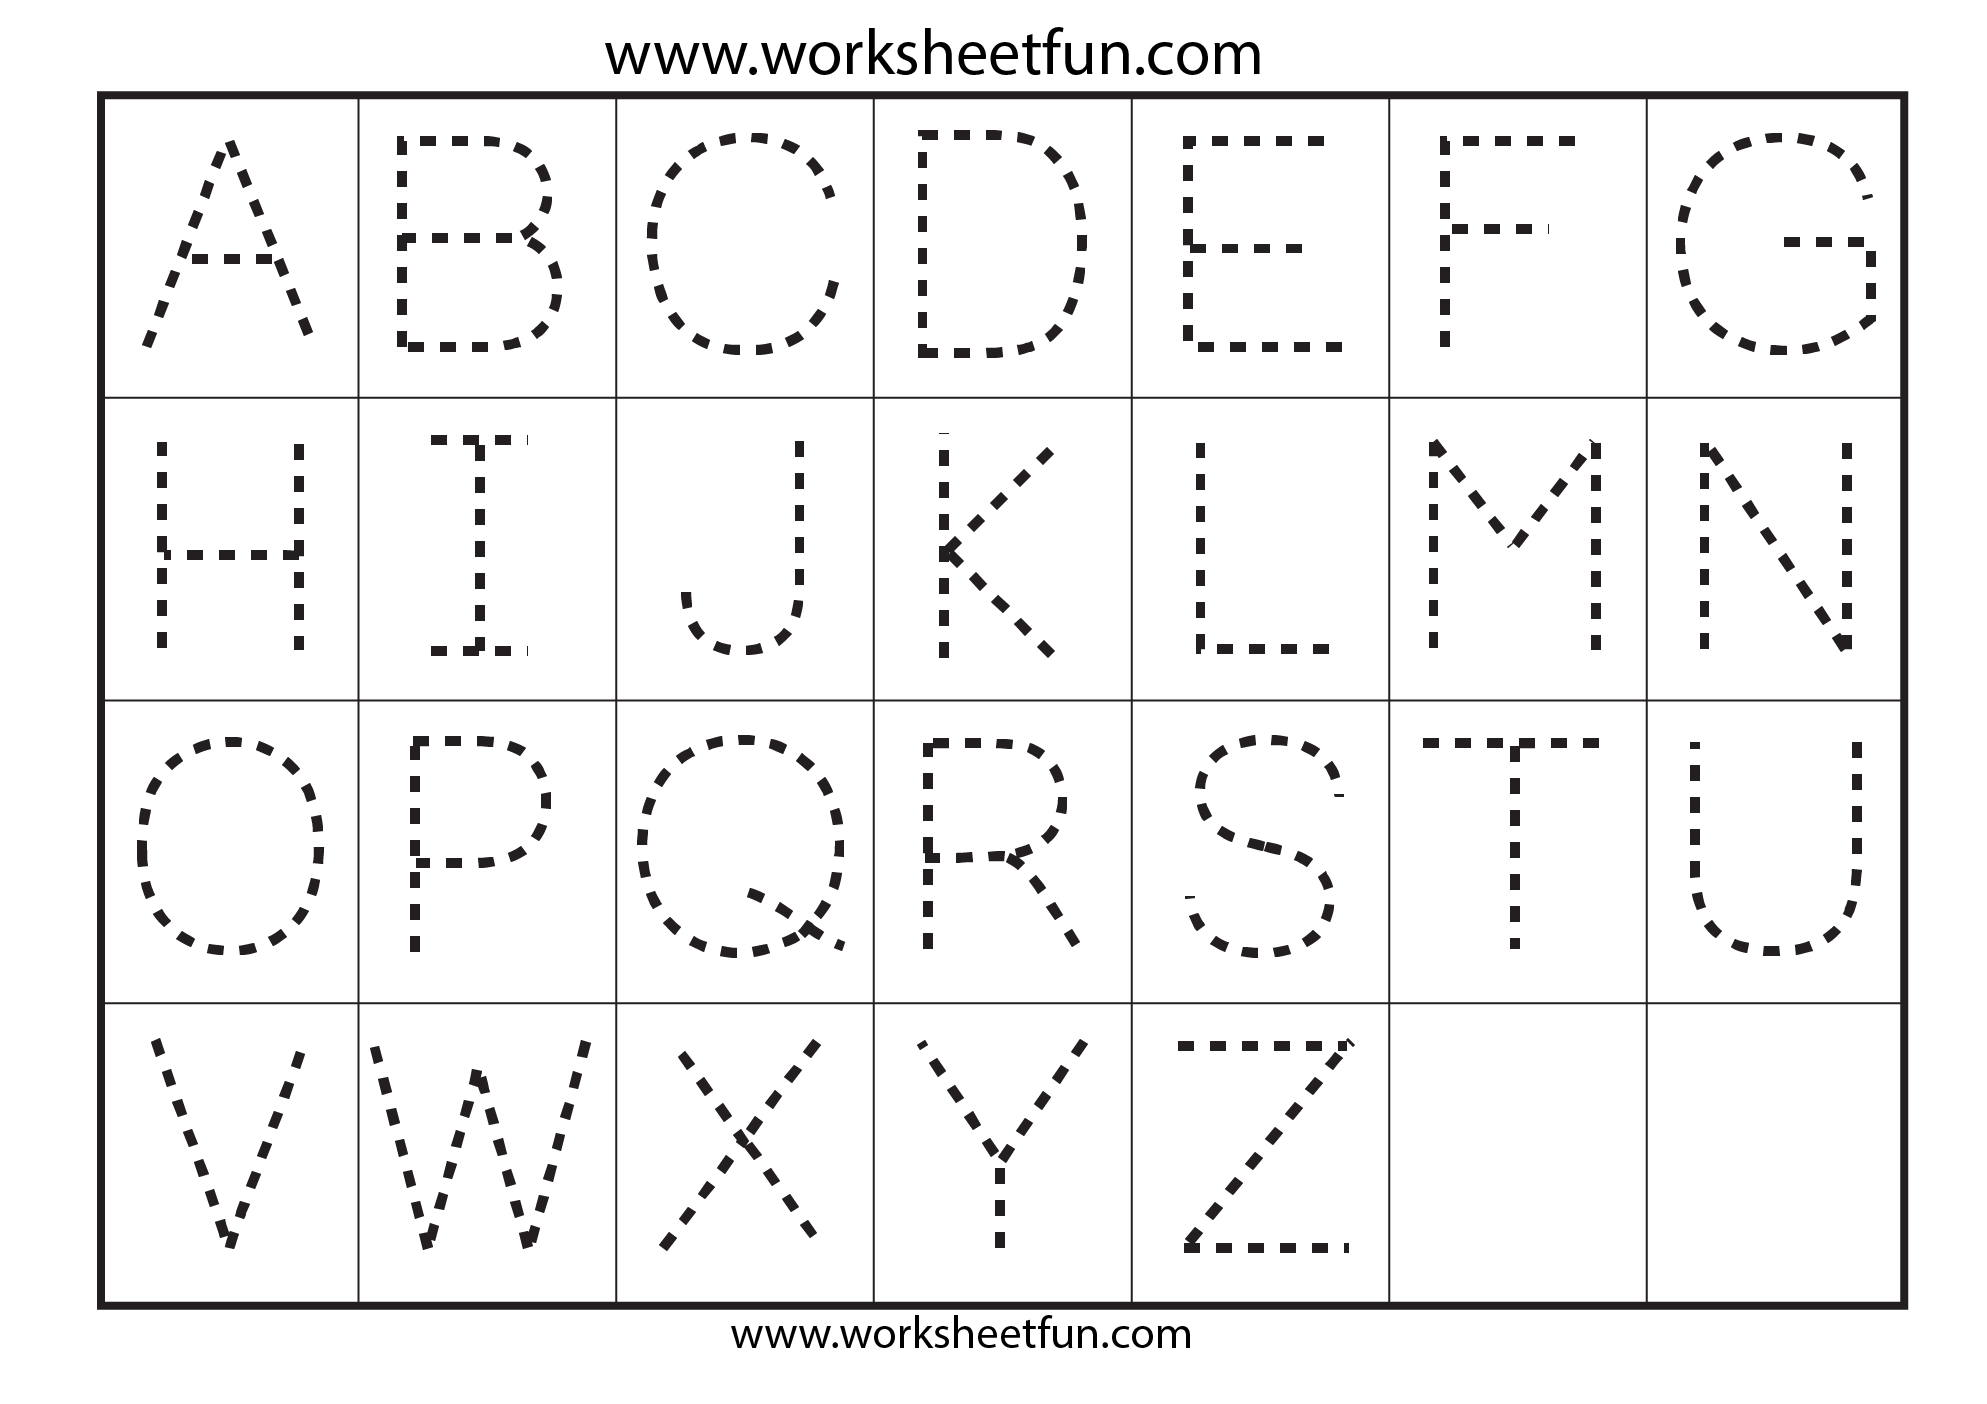 worksheet Create Your Own Spelling Worksheets create your own math worksheets abitlikethis tracing letters for kindergarten spelling worksheets